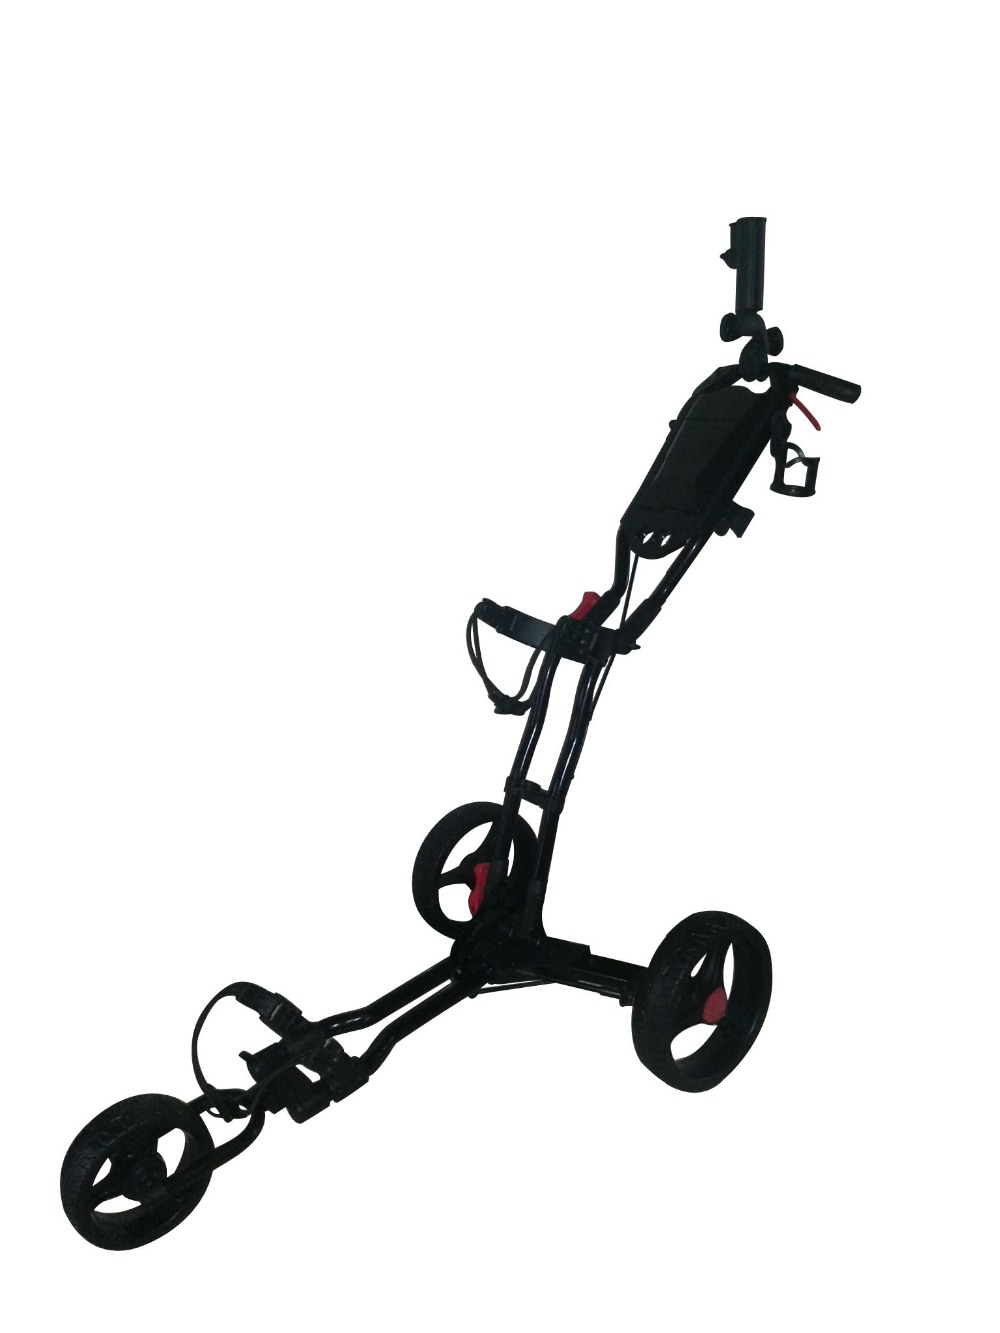 Three Wheel Push Golf Cart for Free UK Delivery(China (Mainland))